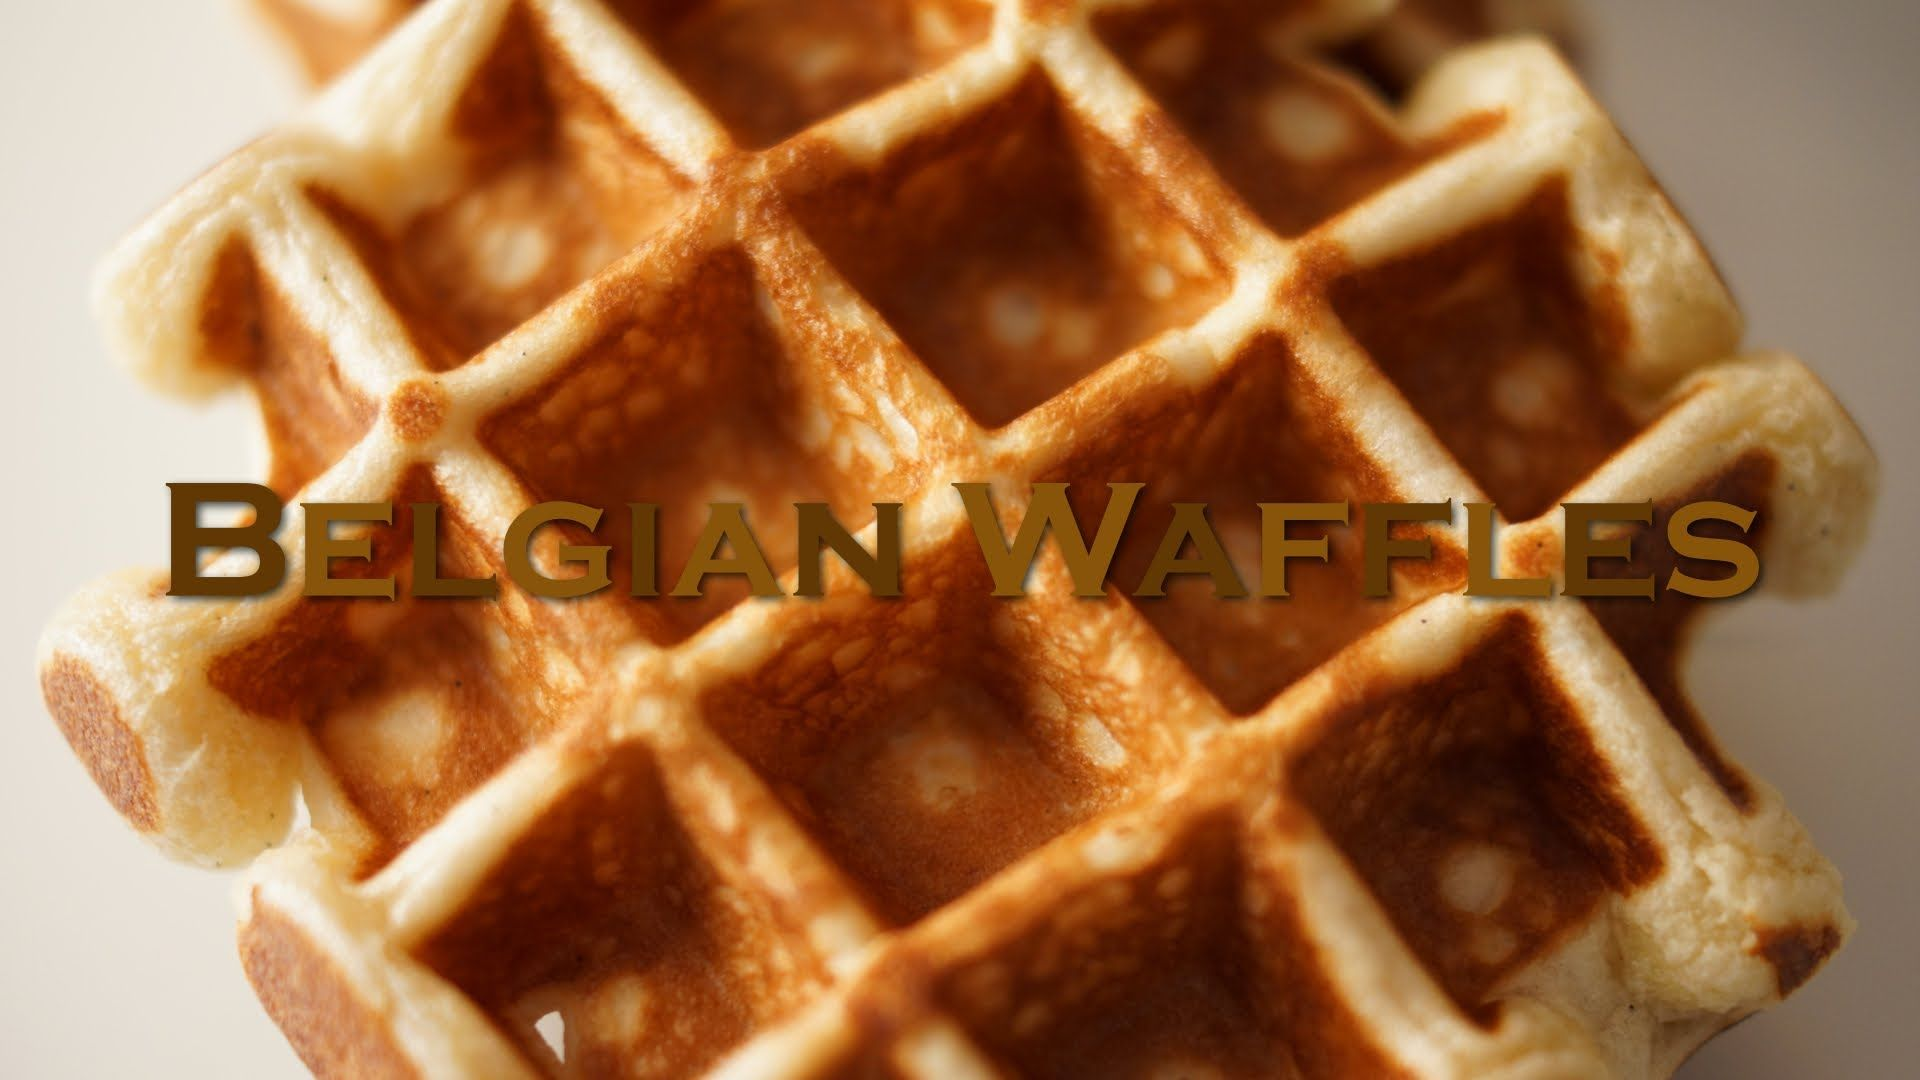 Belgian waffles recipe bruno albouze the real deal playlist food belgian waffles recipe forumfinder Images